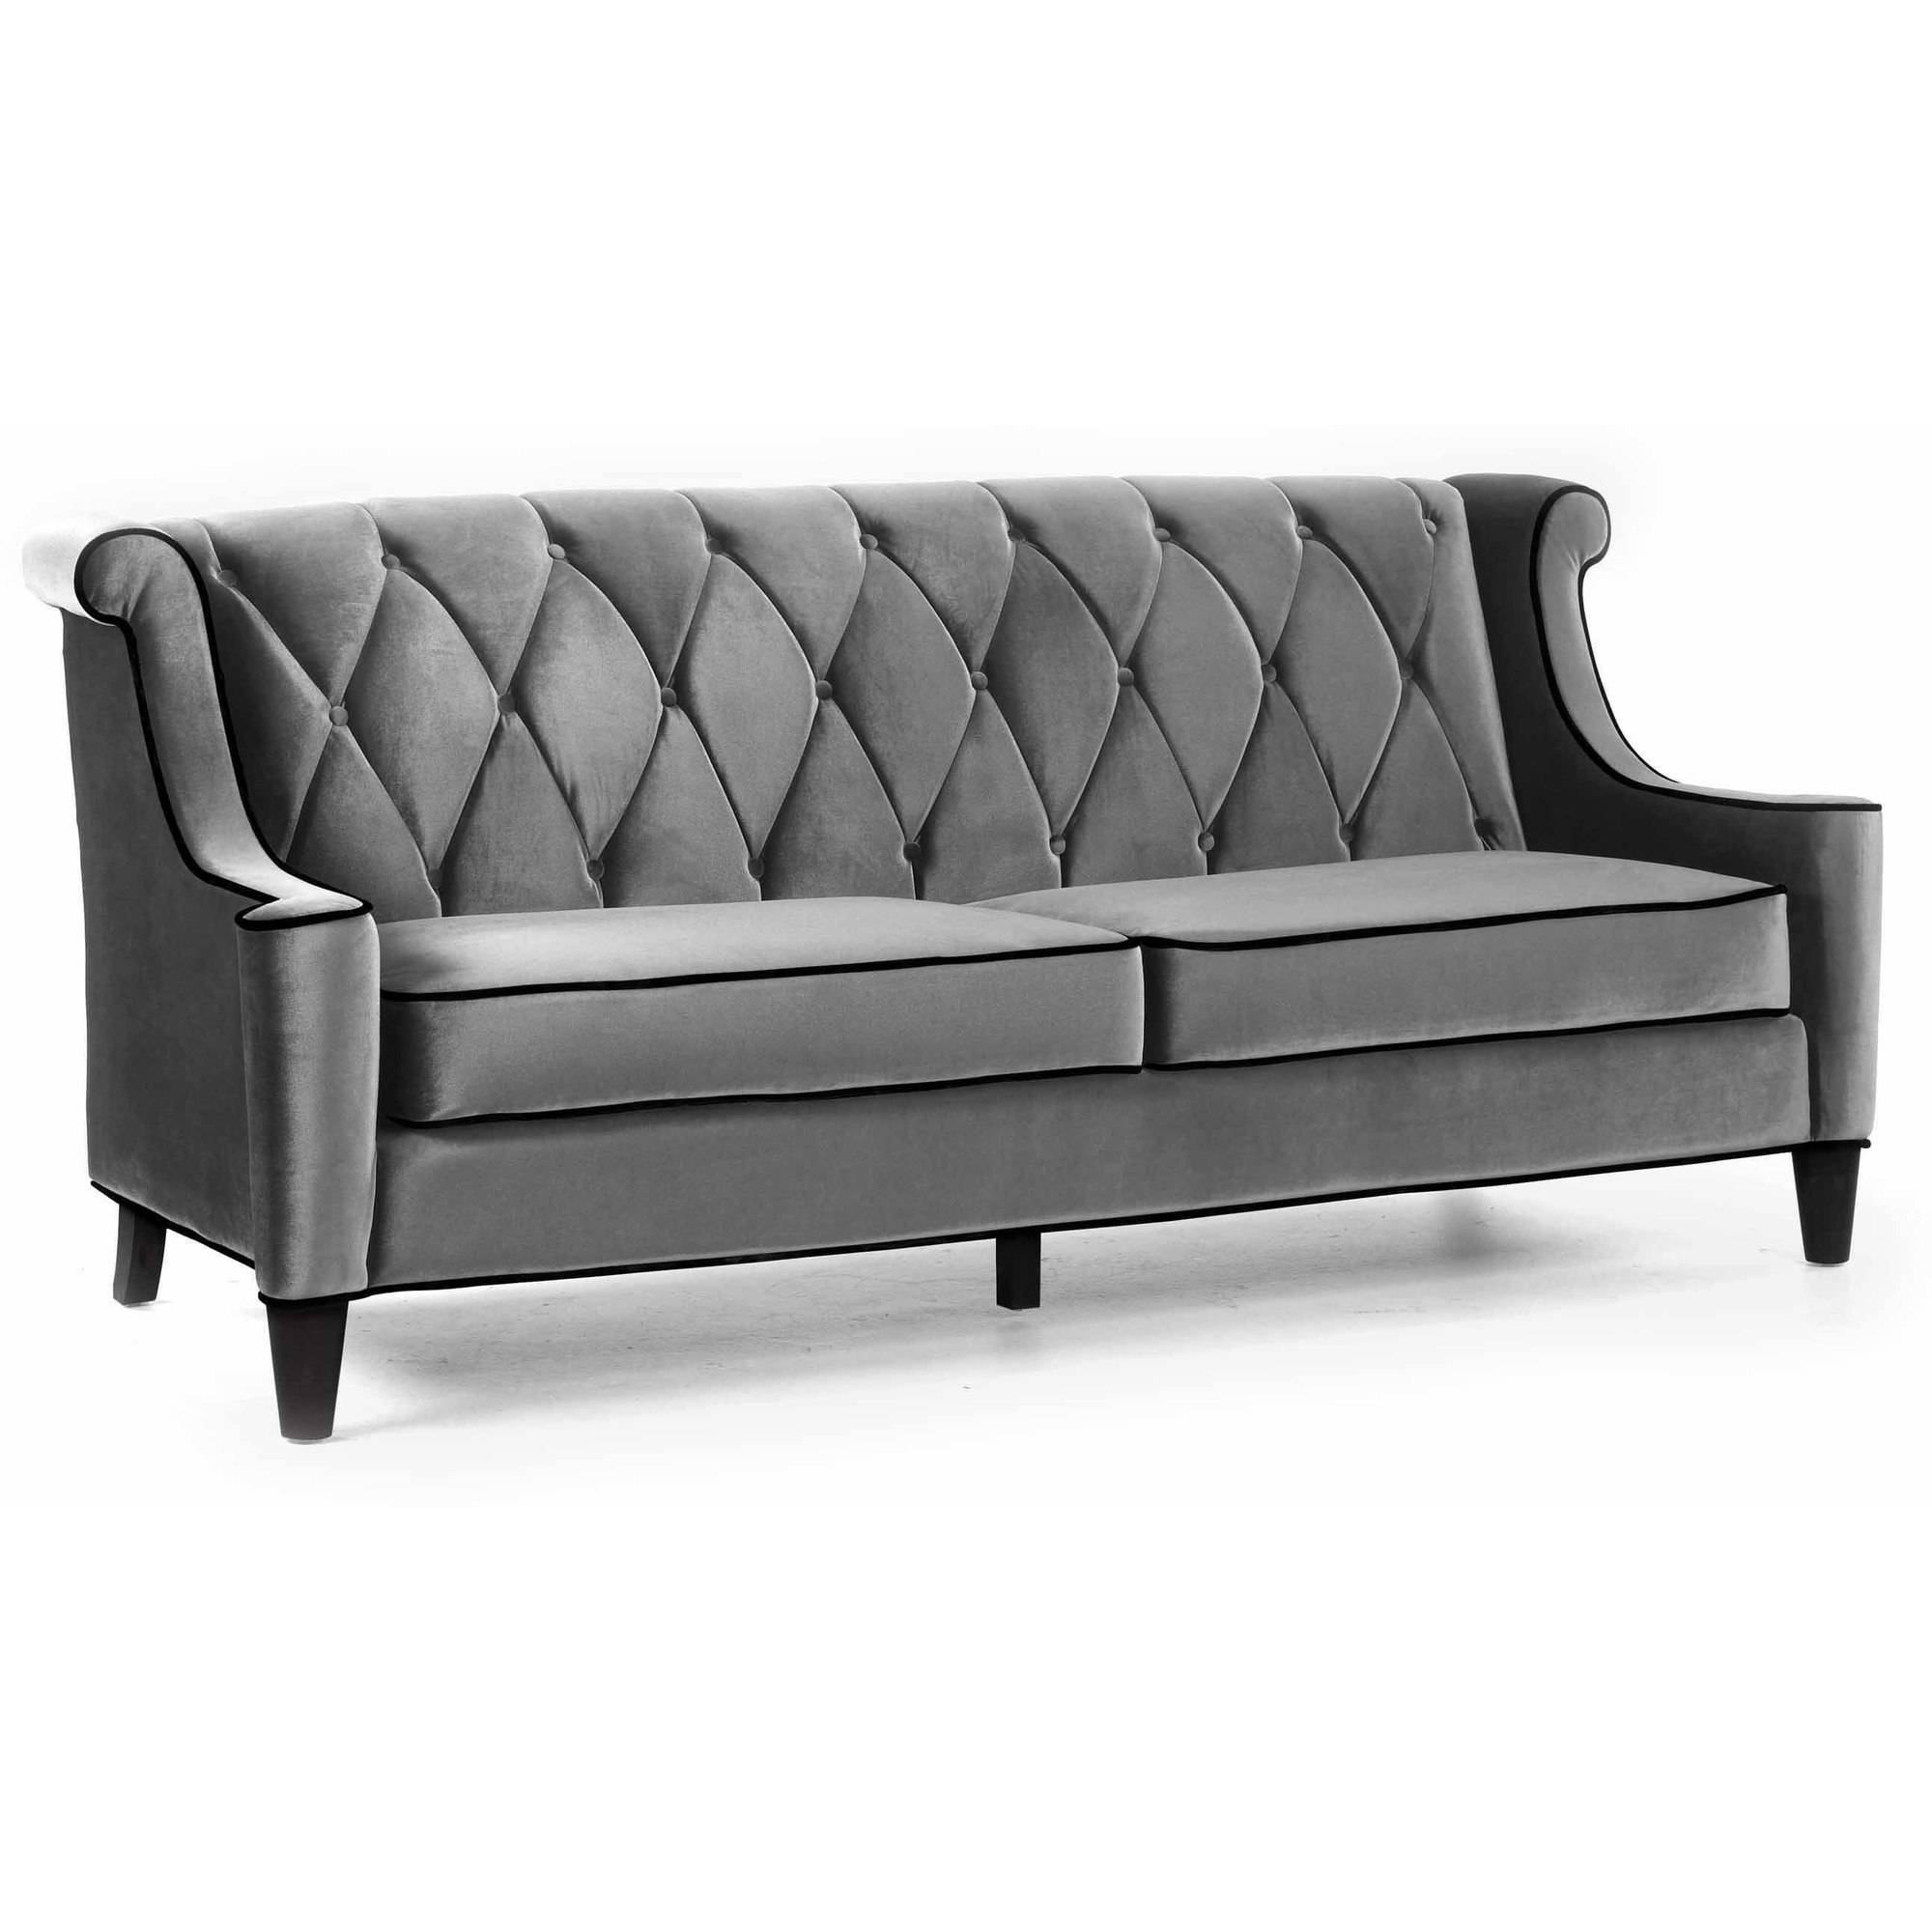 Armen Living Barrister Sofa, Gray Velvet with Black Piping